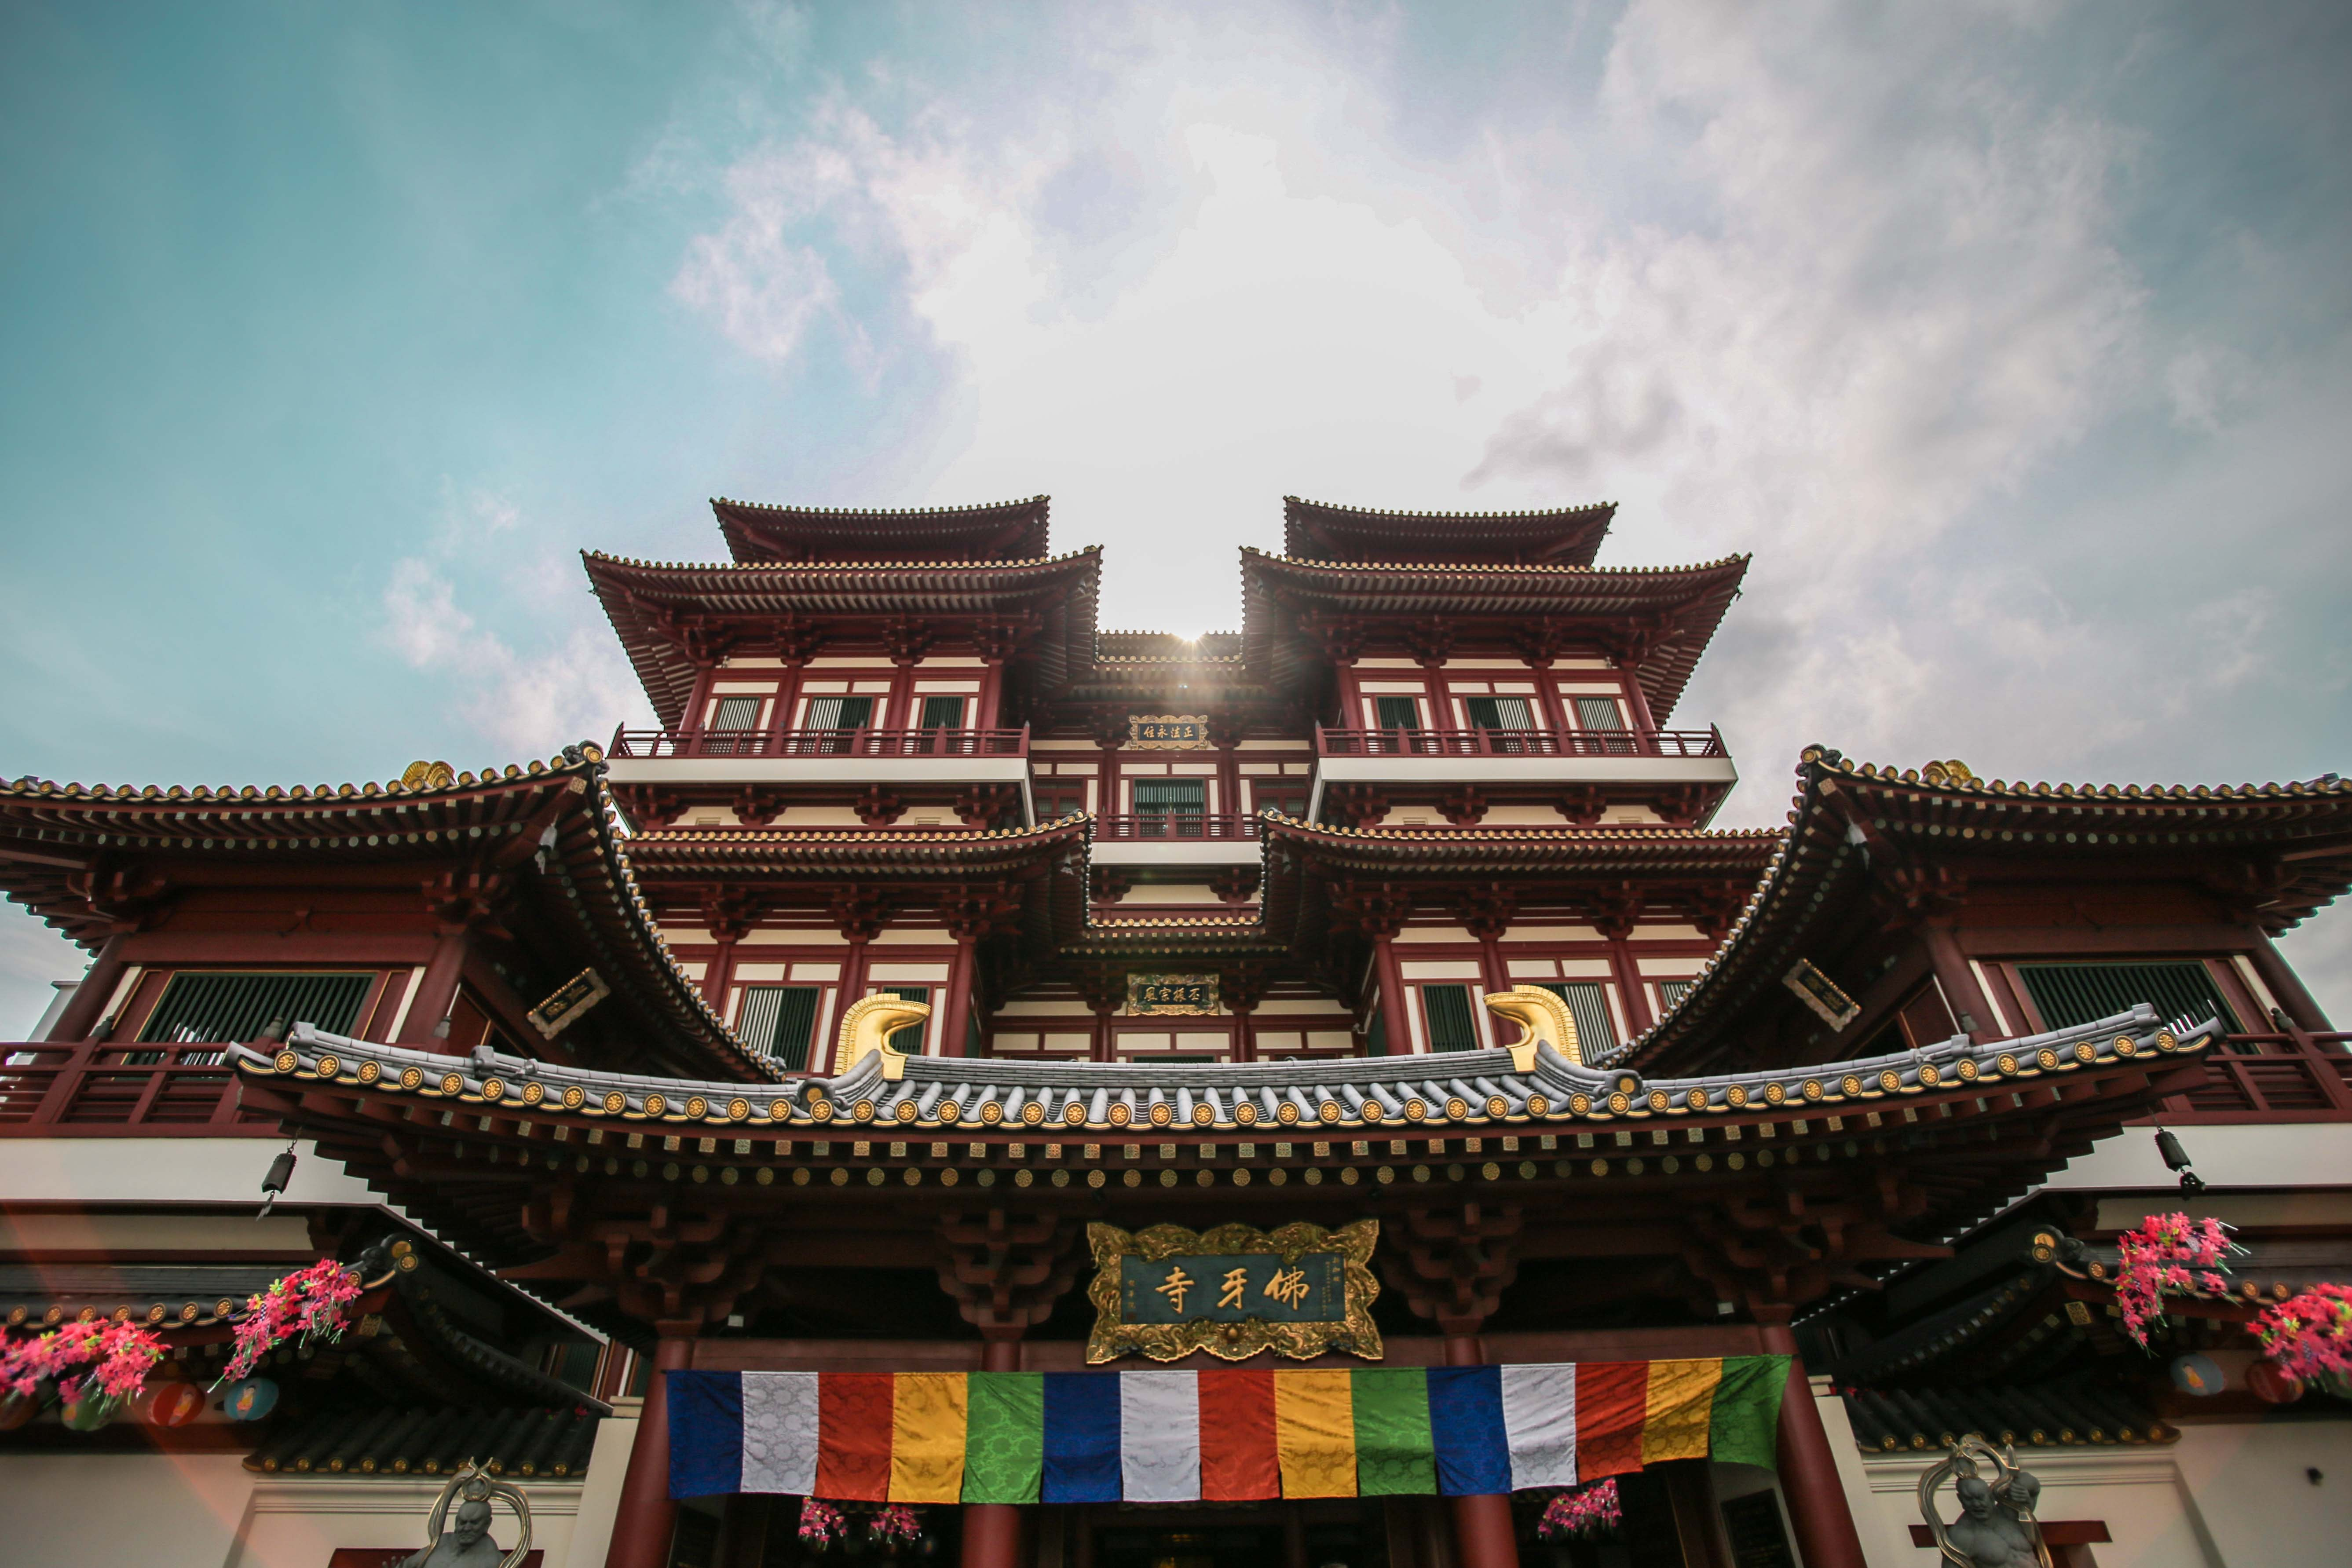 Asian building with traditional architecture